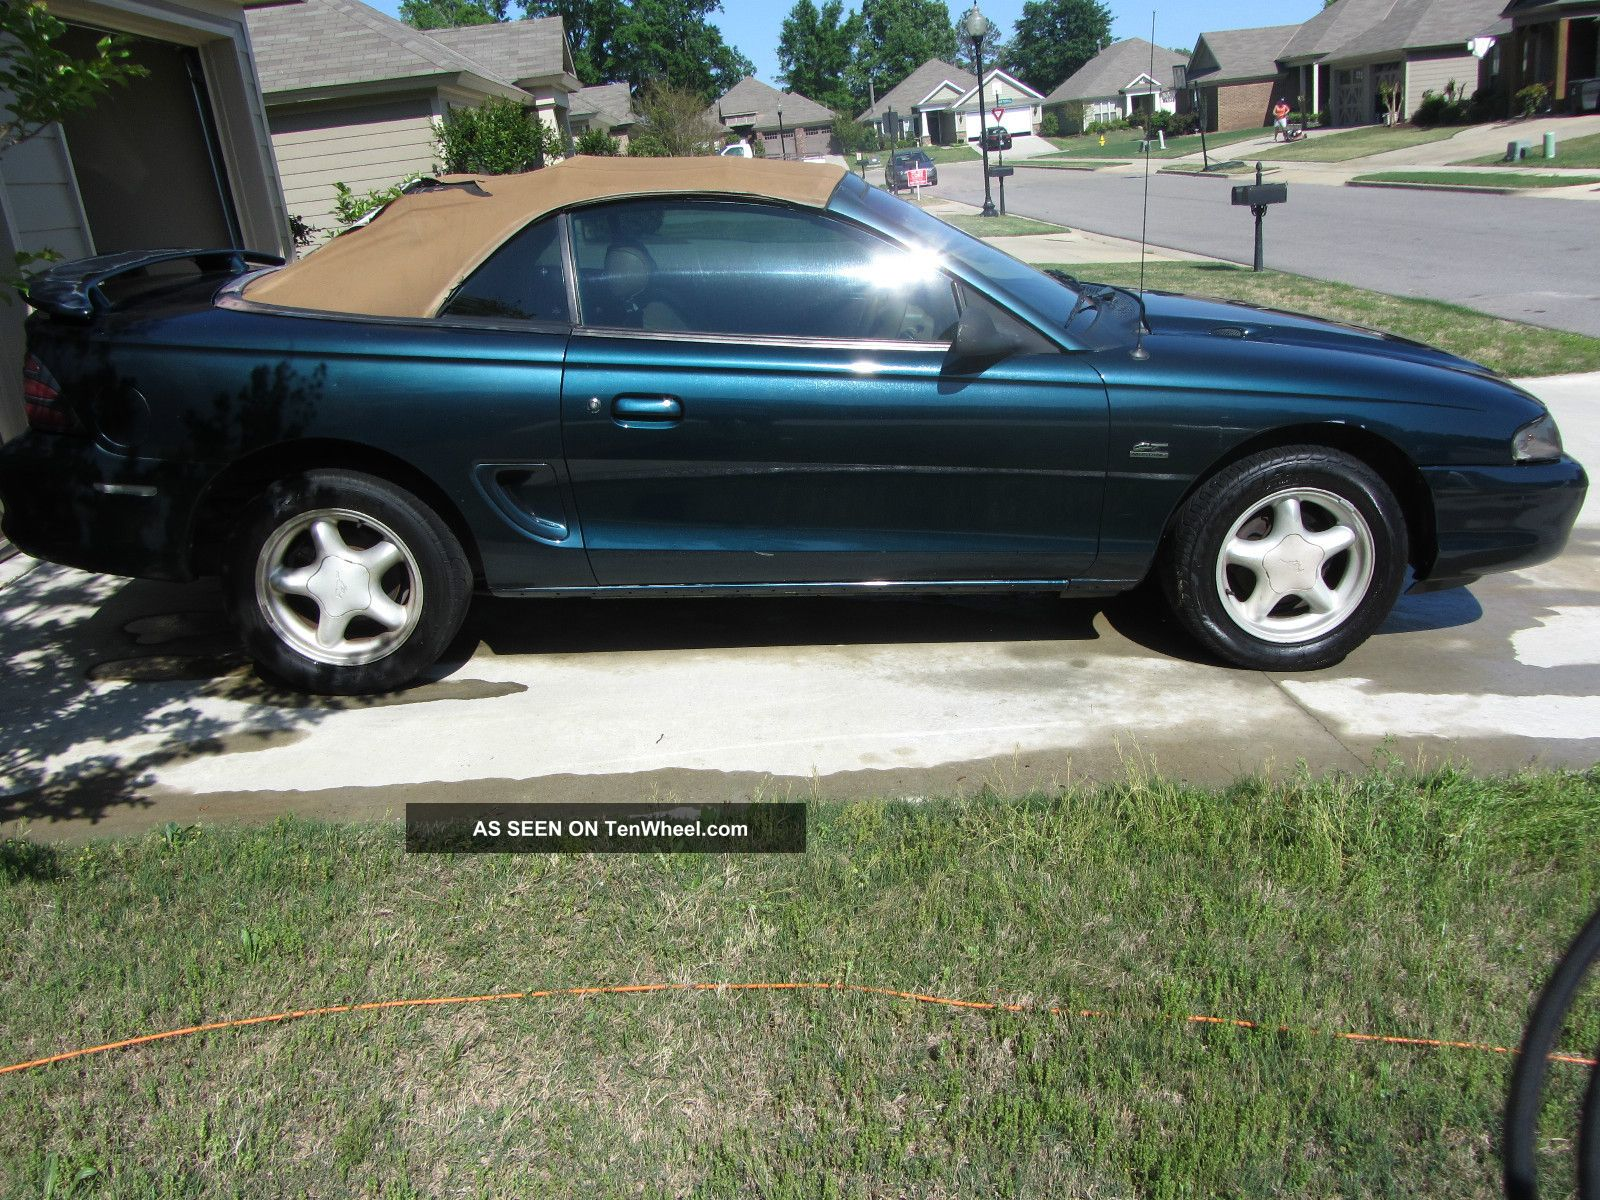 service manual  1995 ford mustang service manal  service manual service and repair manuals 1990 Mustang Convertible 1995 Mustang Convertible